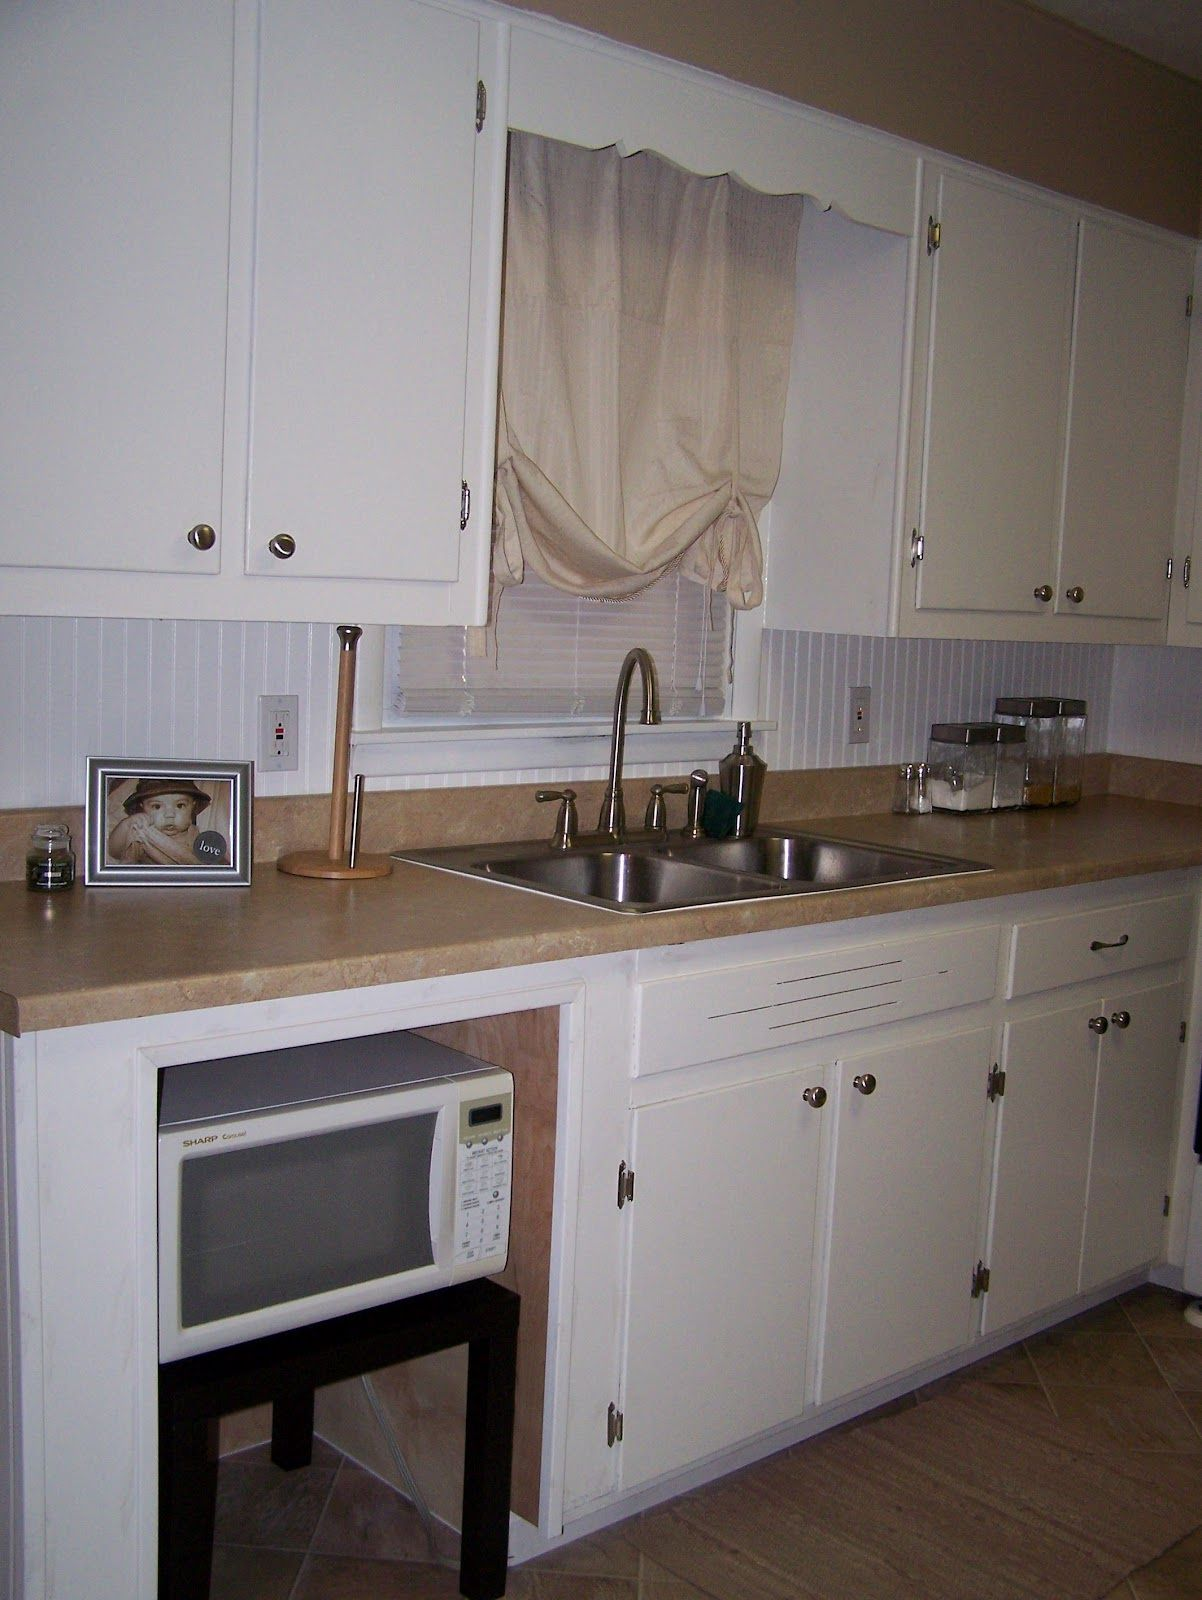 Replacement Hinges For Old Kitchen Cabinets 2020 In 2020 Kitchen Cabinets Trim Old Kitchen Cabinets Victorian Kitchen Cabinets